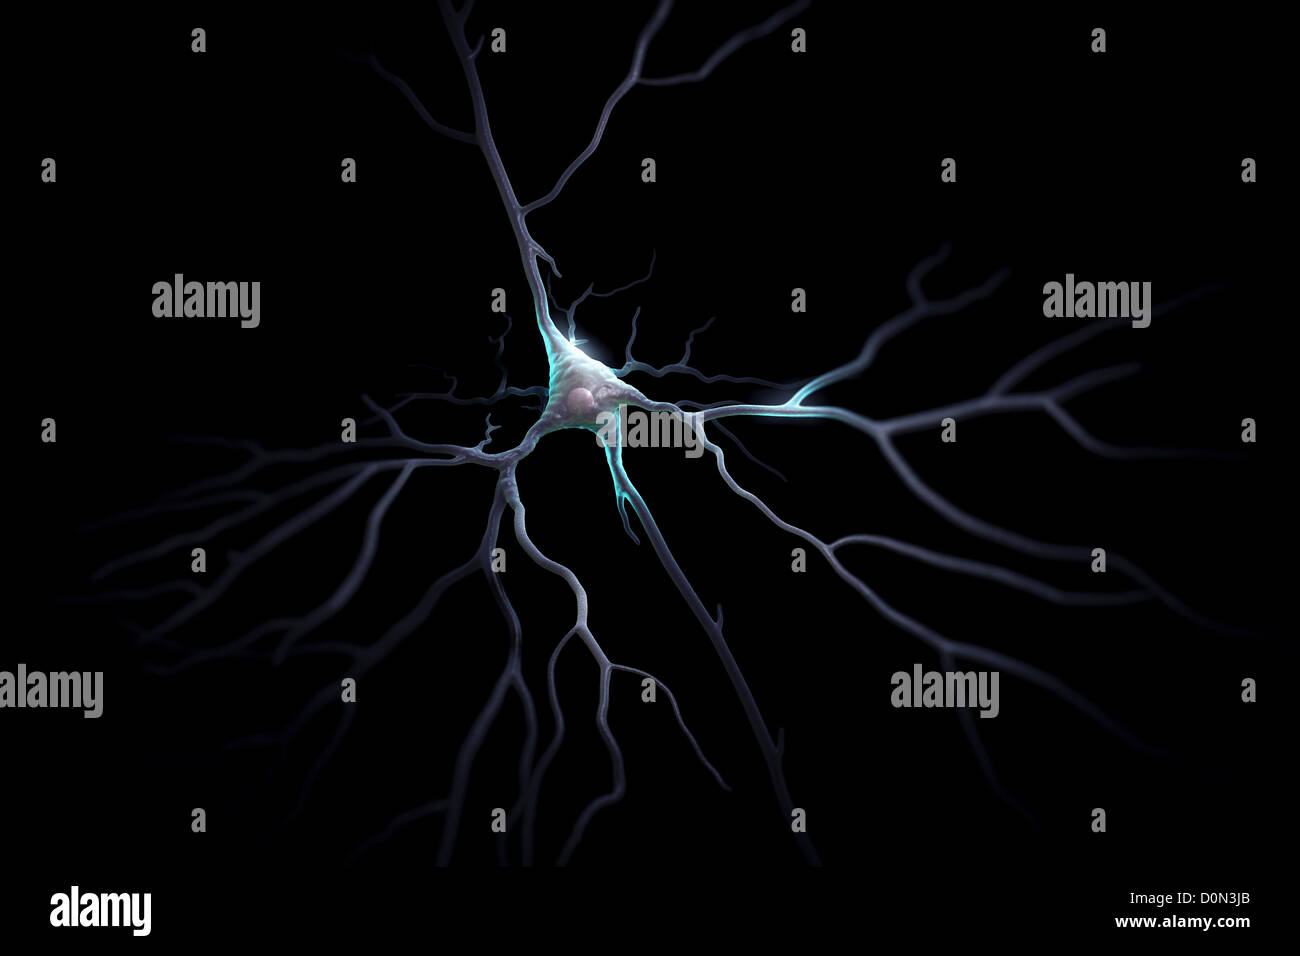 Pyramidal neurons or pyramidal cells are type neuron found in brain including regions such as cerebral cortex hippocampus Stock Photo